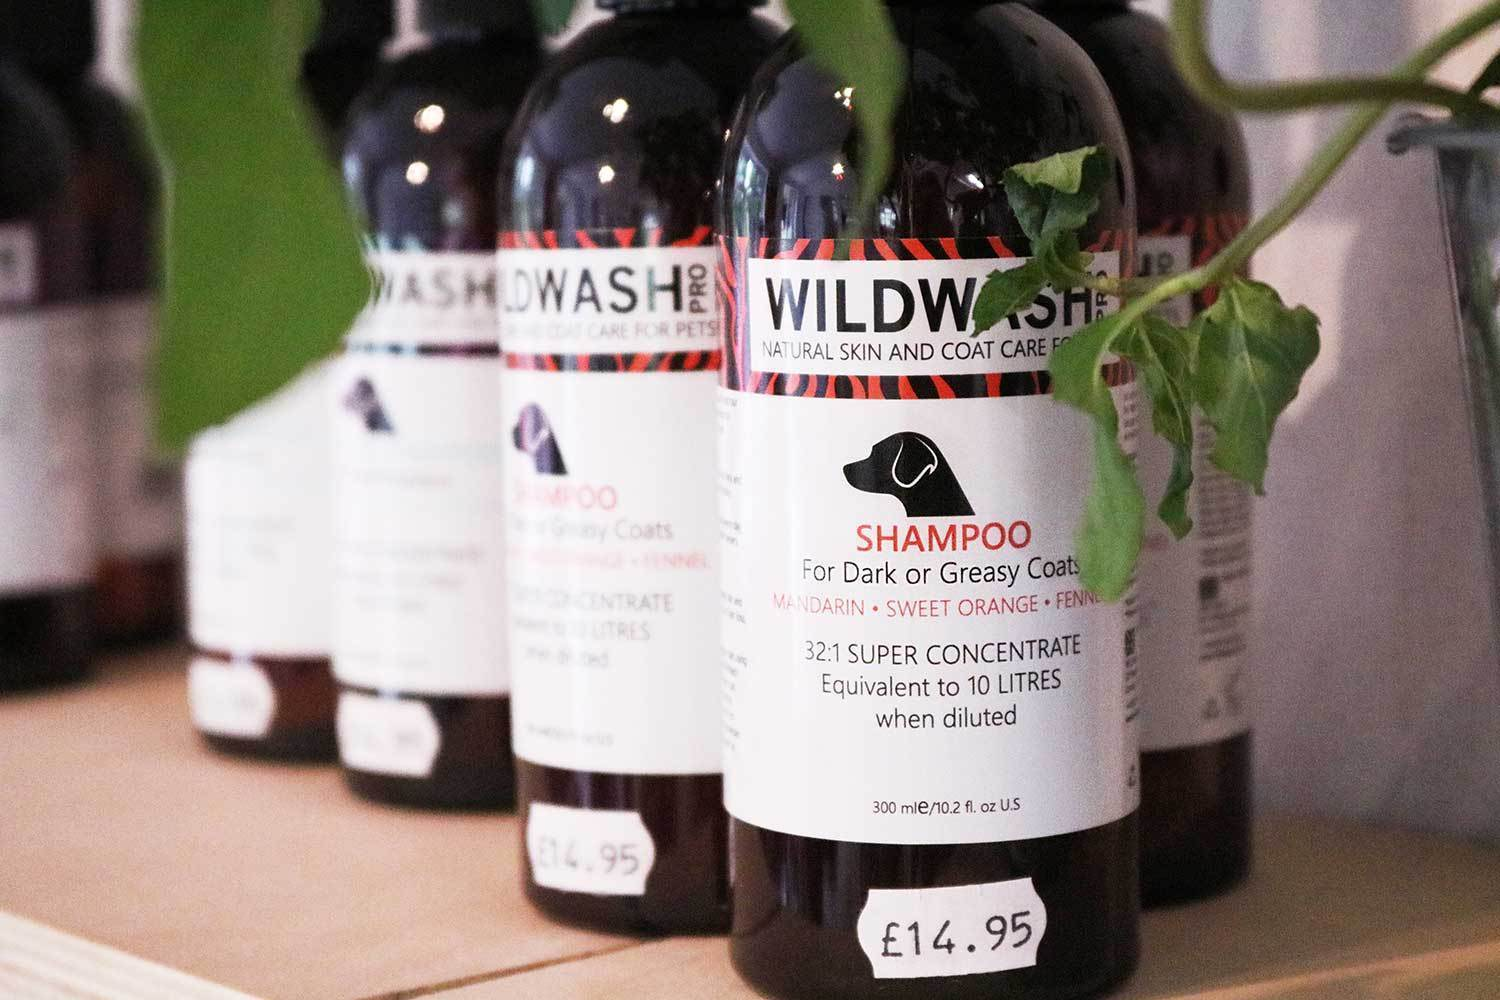 4 Reasons Why We Love WildWash